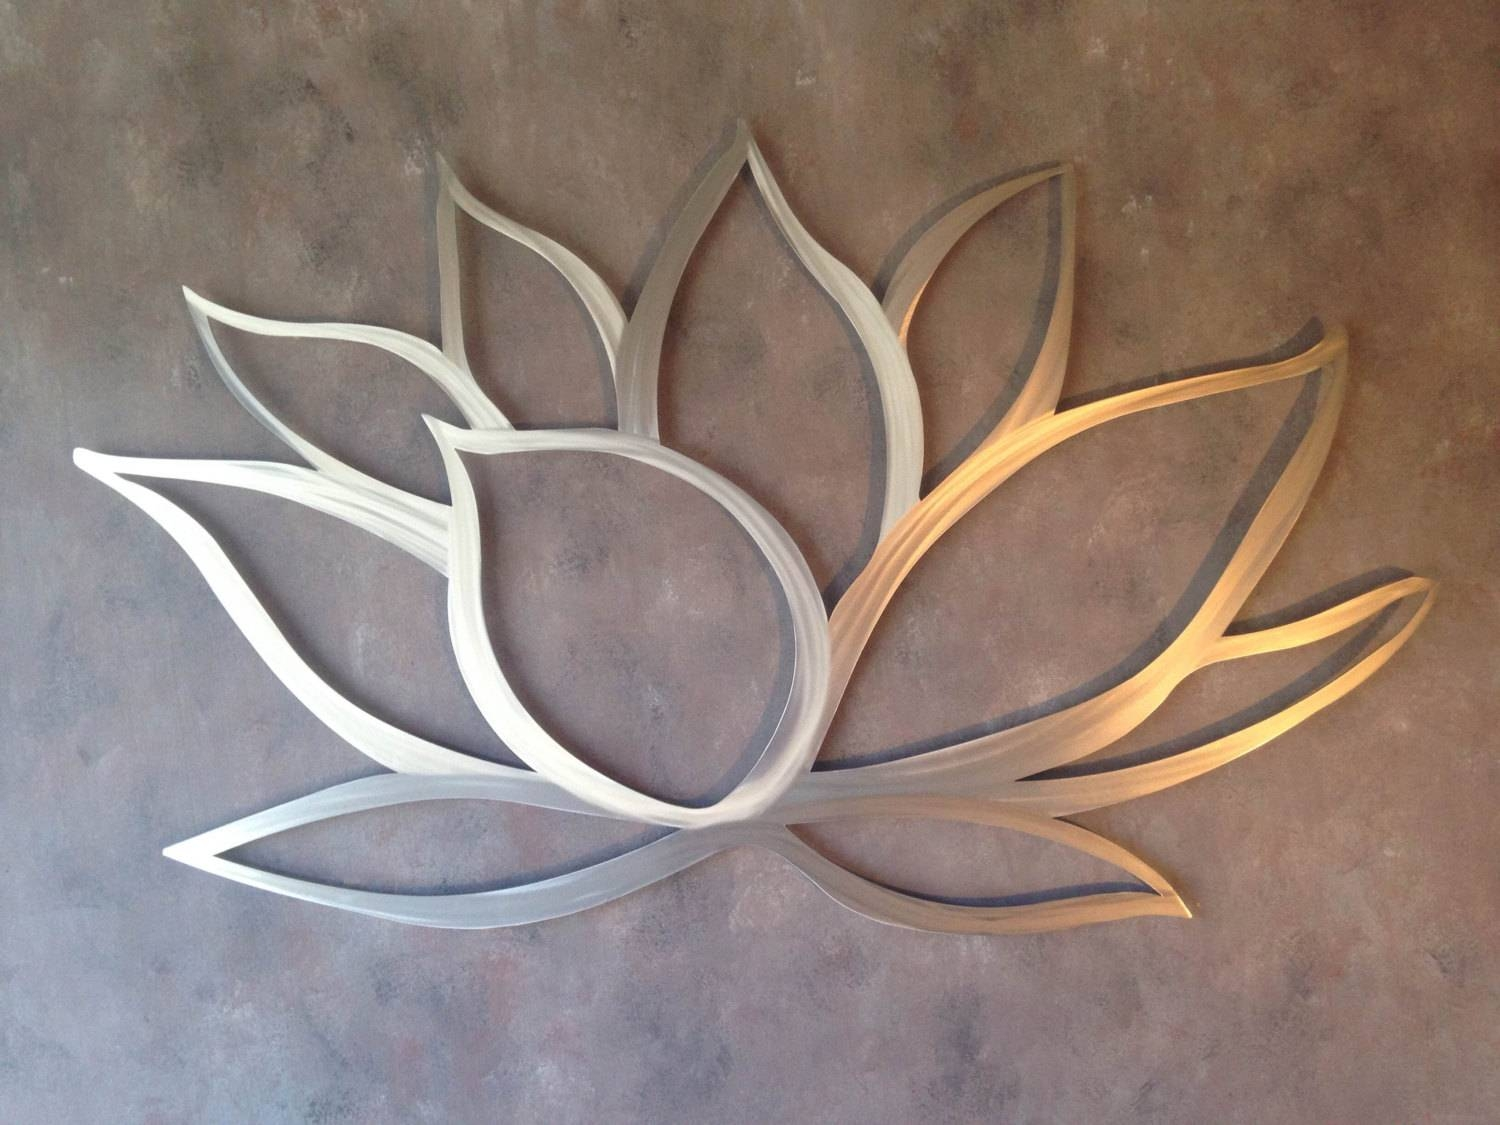 Appealing Metal Wall Artwork 126 Metal Wall Decor Canada Full In Most Current Buddha Metal Wall Art (View 2 of 20)